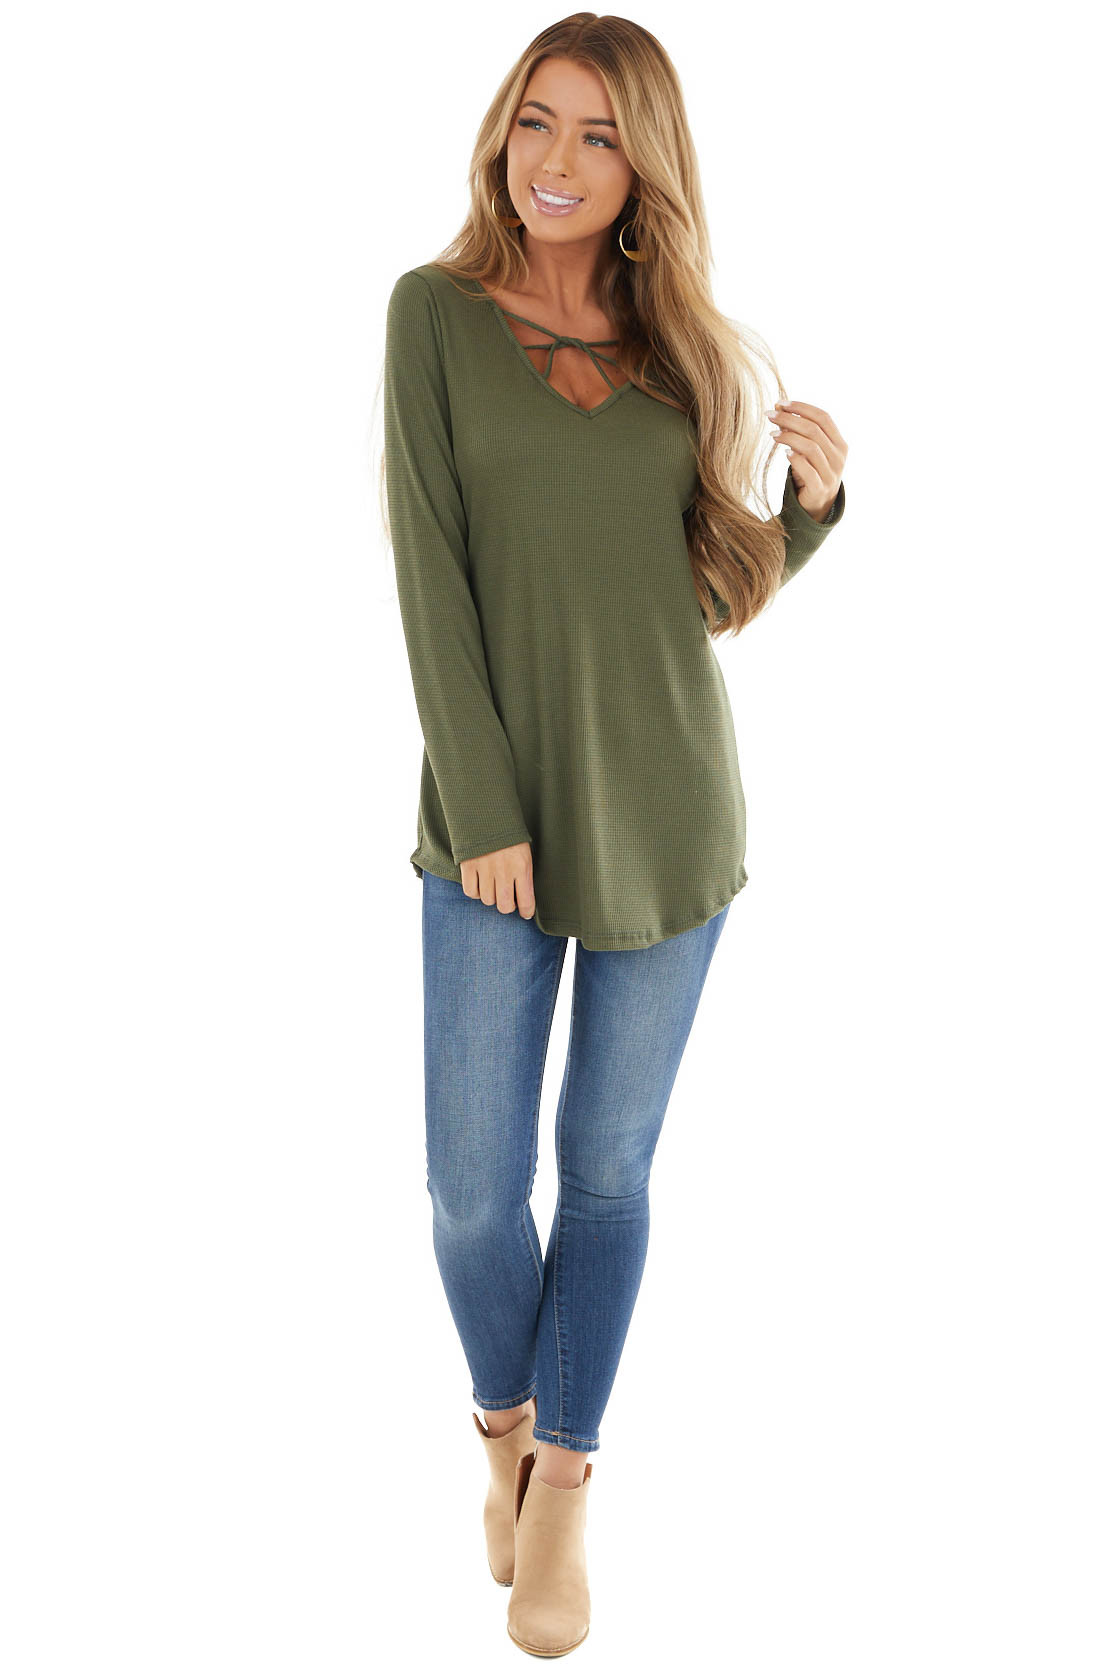 Olive Green Ribbed Long Sleeve Knit Top with Caged Neckline